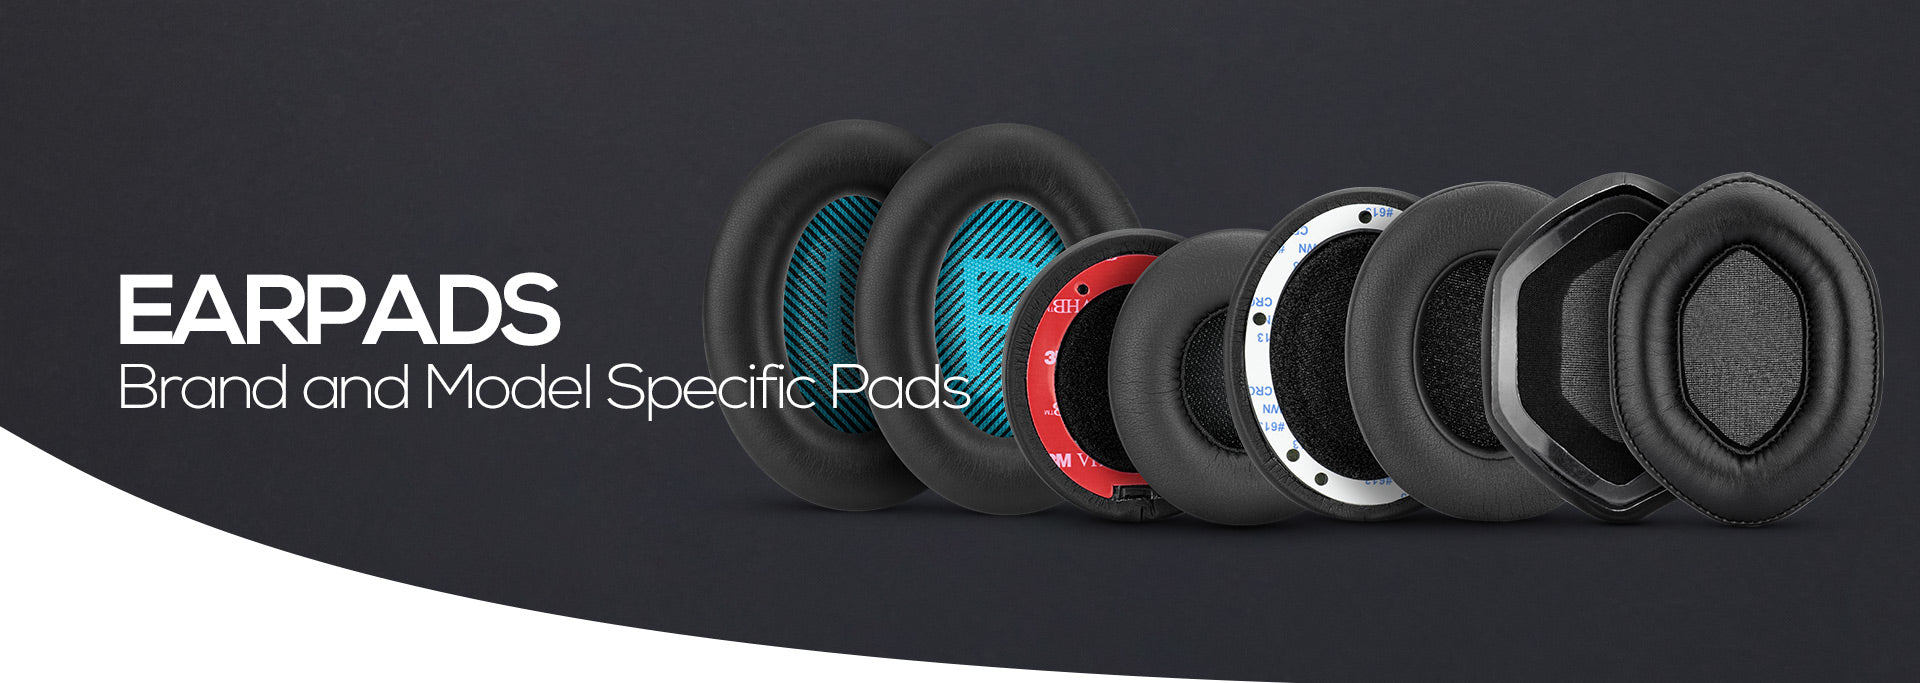 Brand and Model Specific Earpads